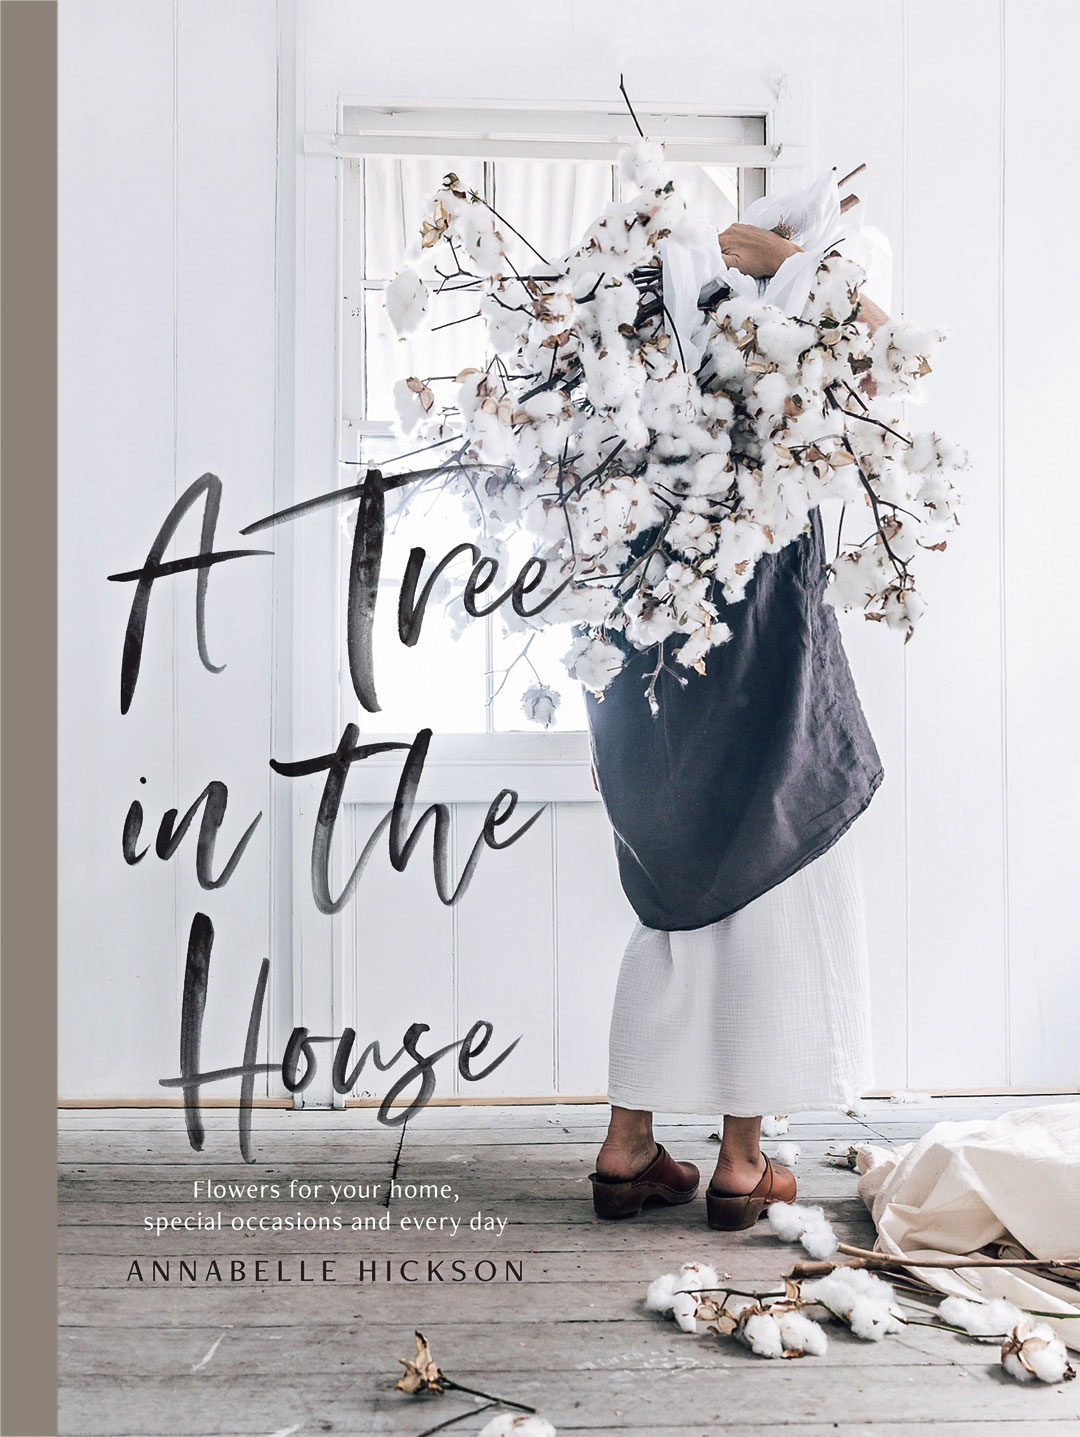 A Tree In The House Annabelle Hickson, Hardie Grant Books, RRP $49.99